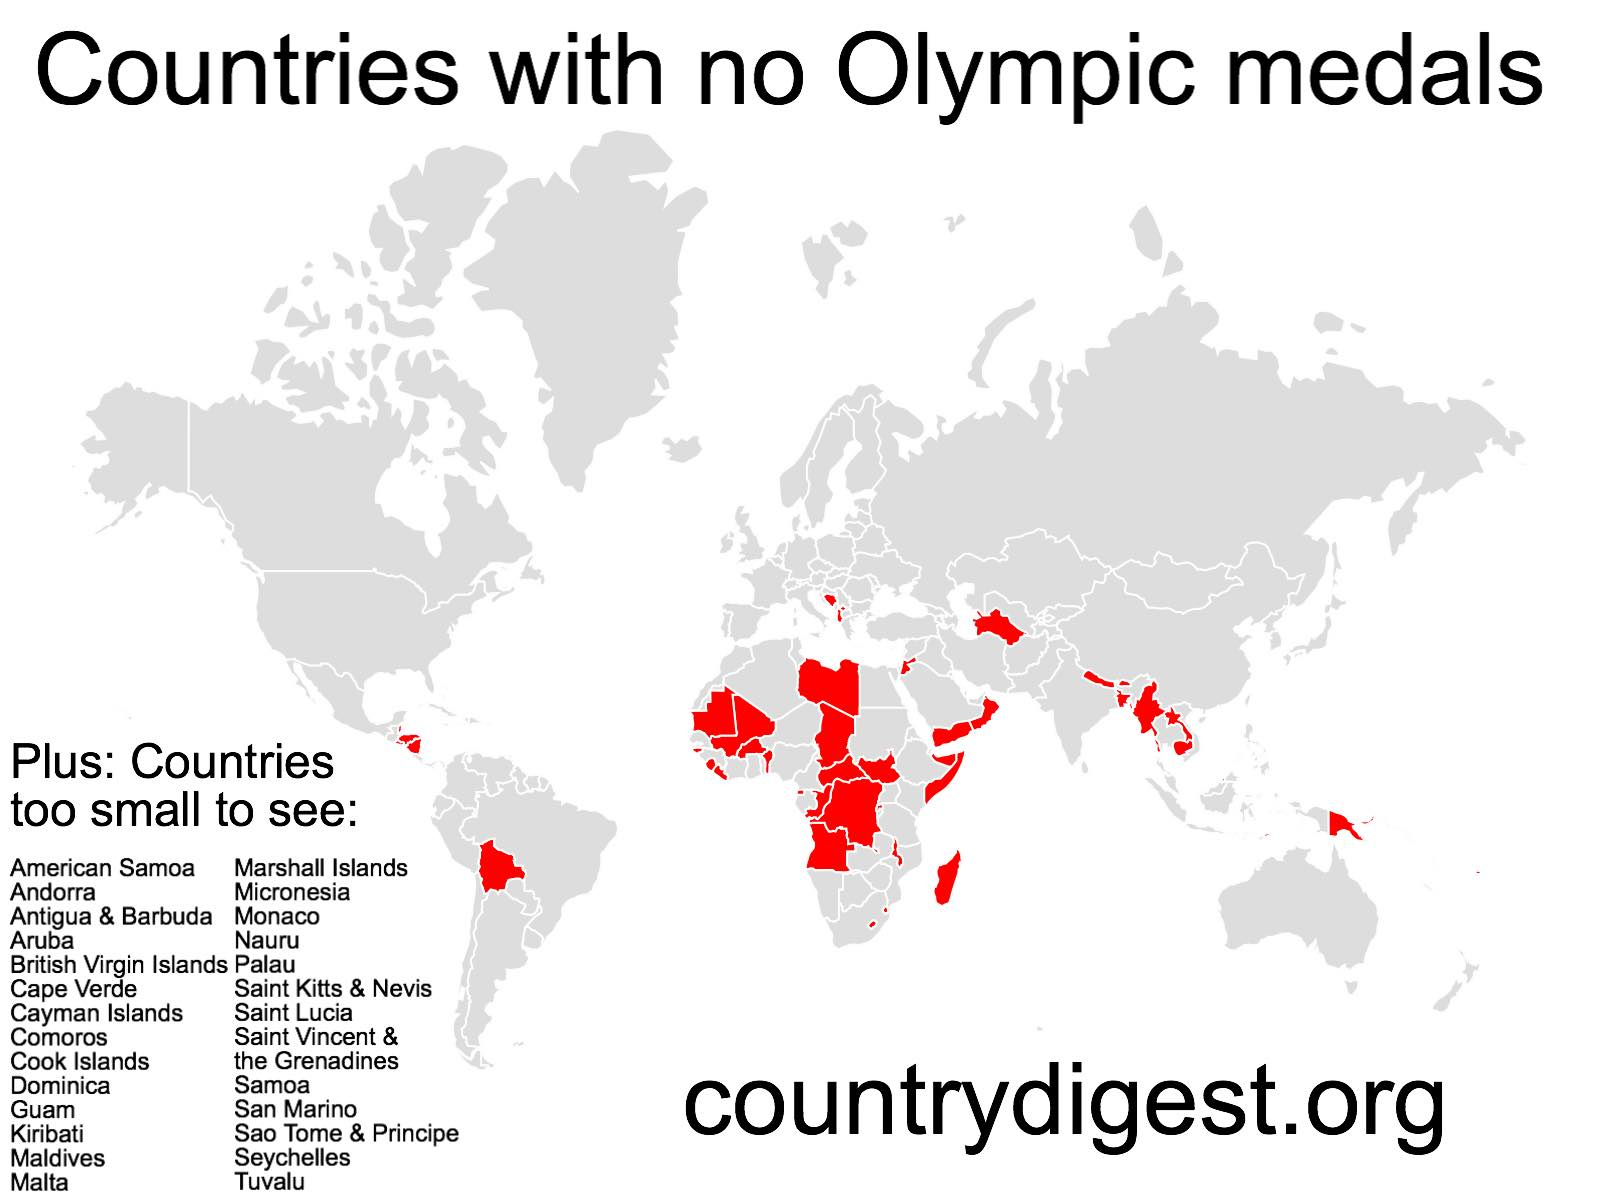 No Olympic Medals Countries map